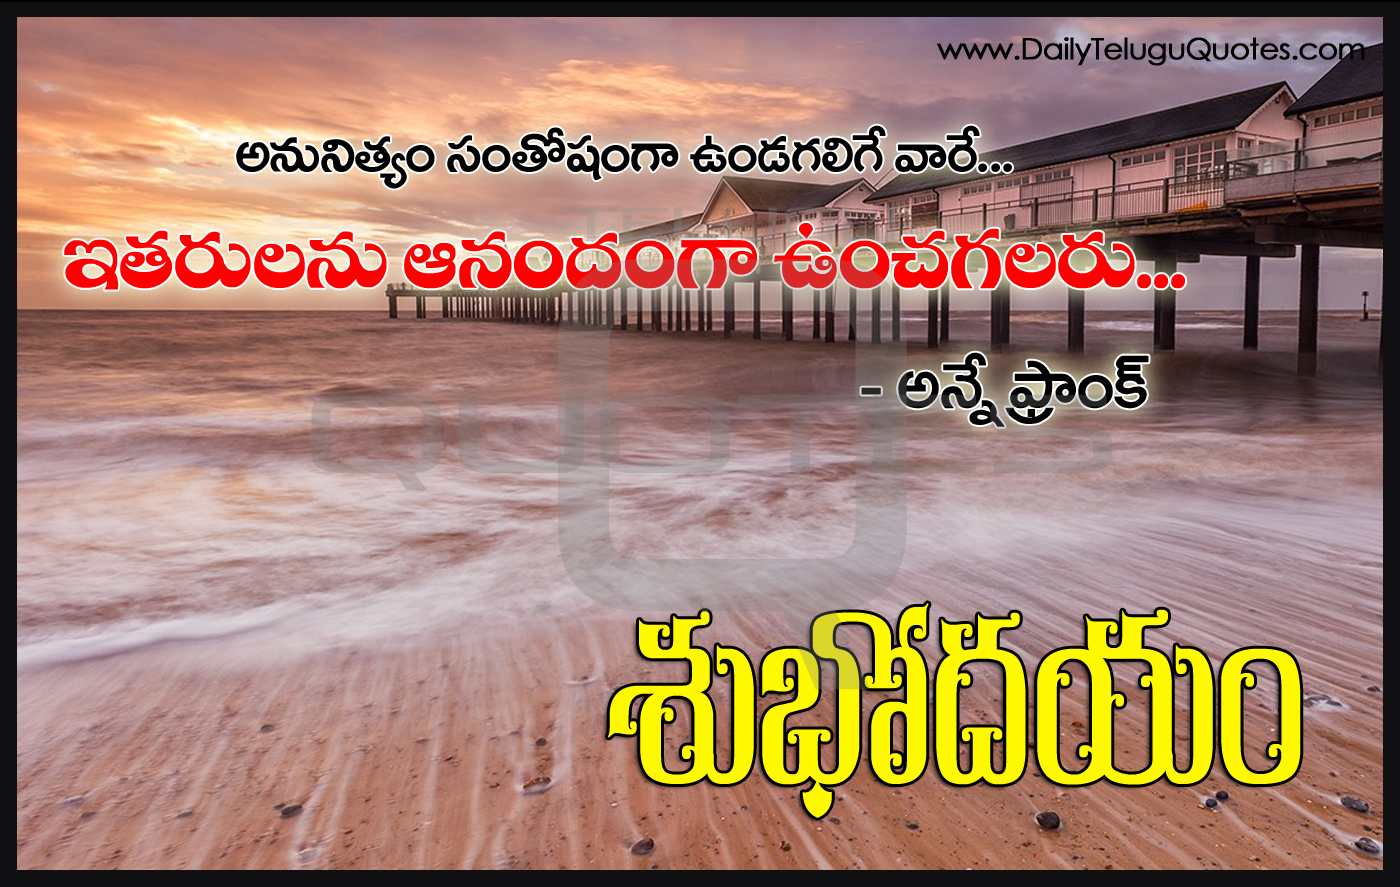 Inspirational Thoughts About Life Good Morning Images Best Telugu Quotations Hd Wallpapers Life